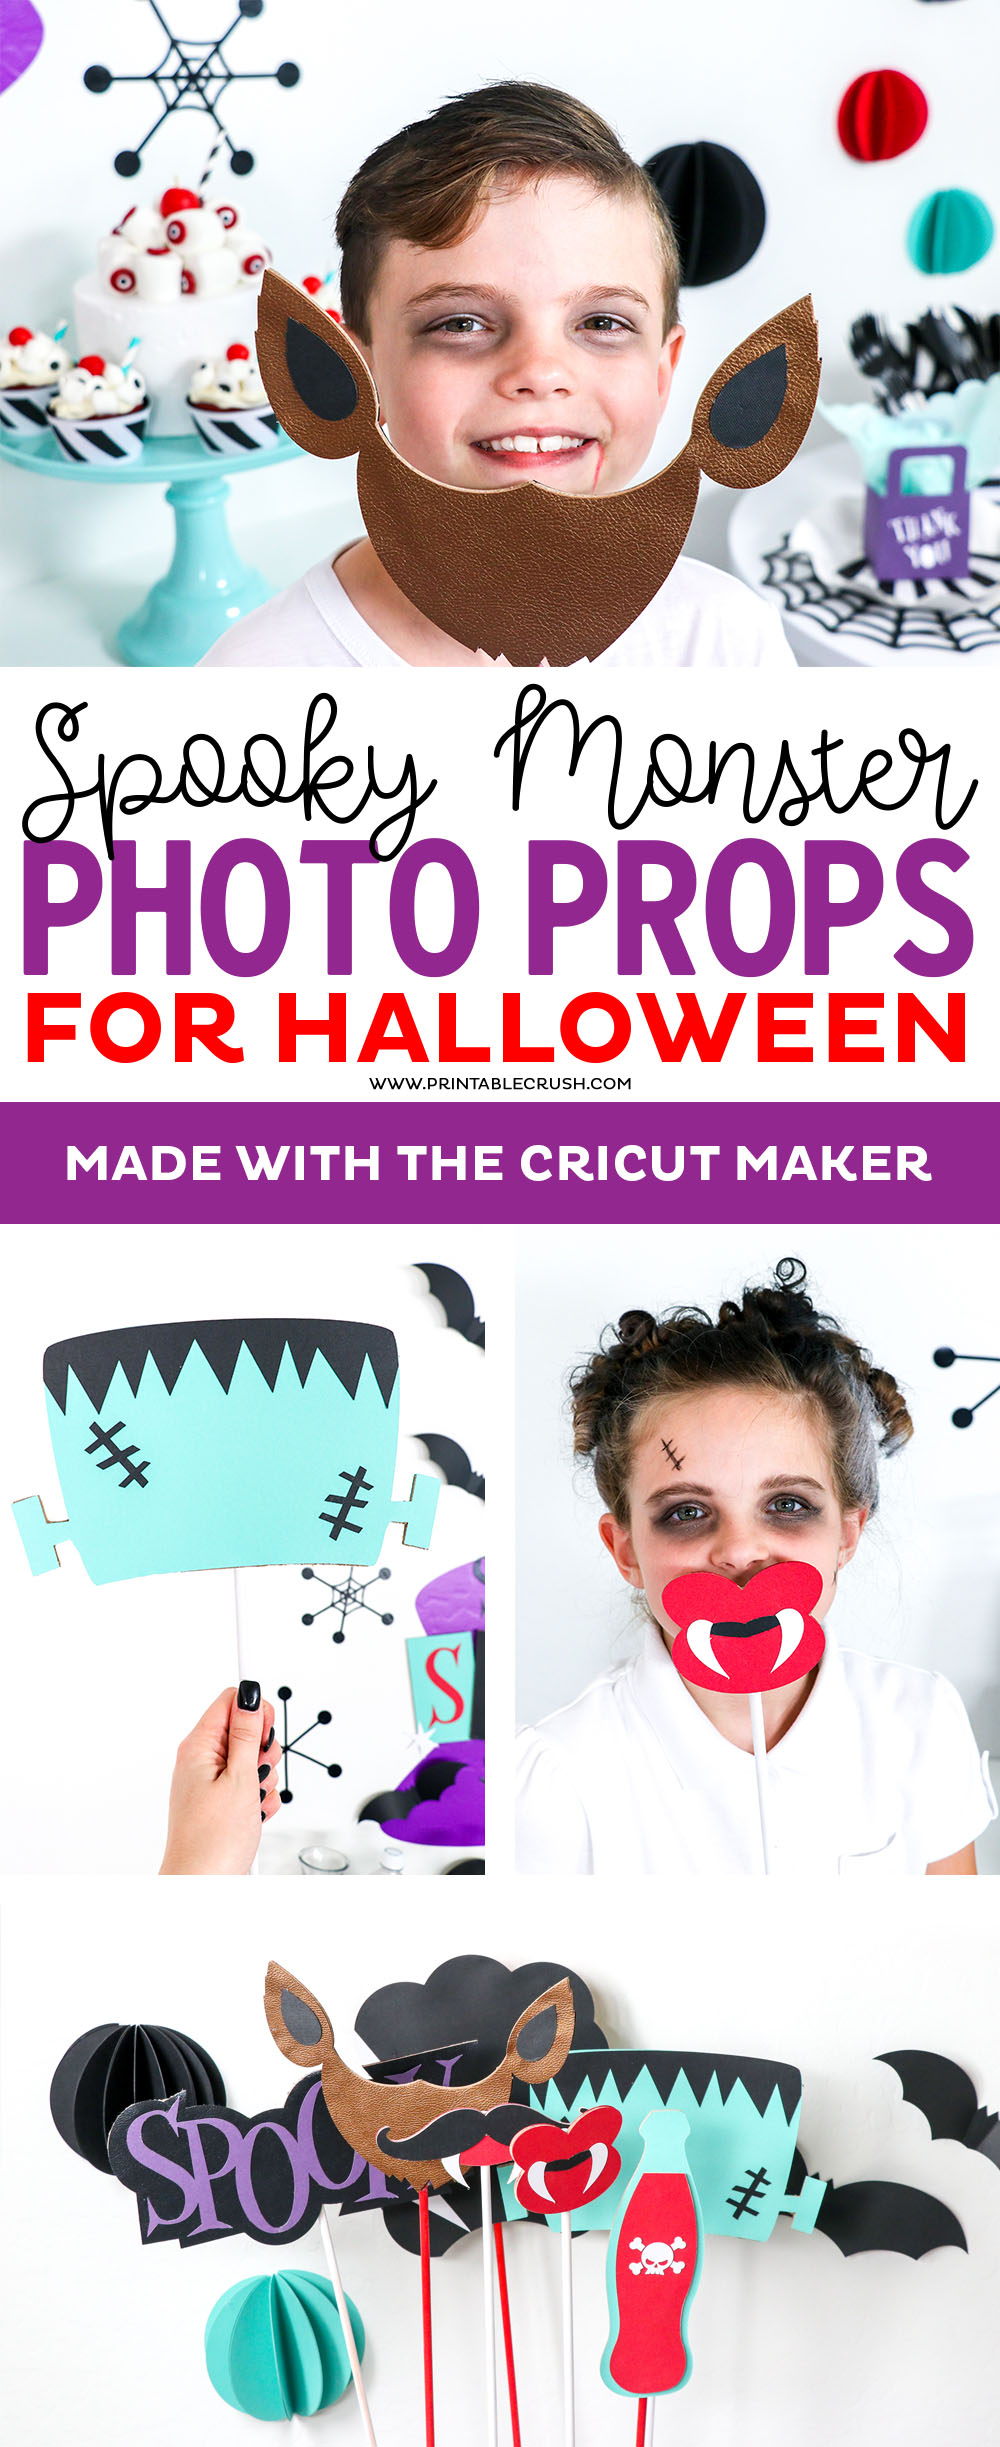 Make these Monster Photo Props with your Cricut Maker! They will be a hit at your next Halloween party or use them as part of a Halloween Costume.